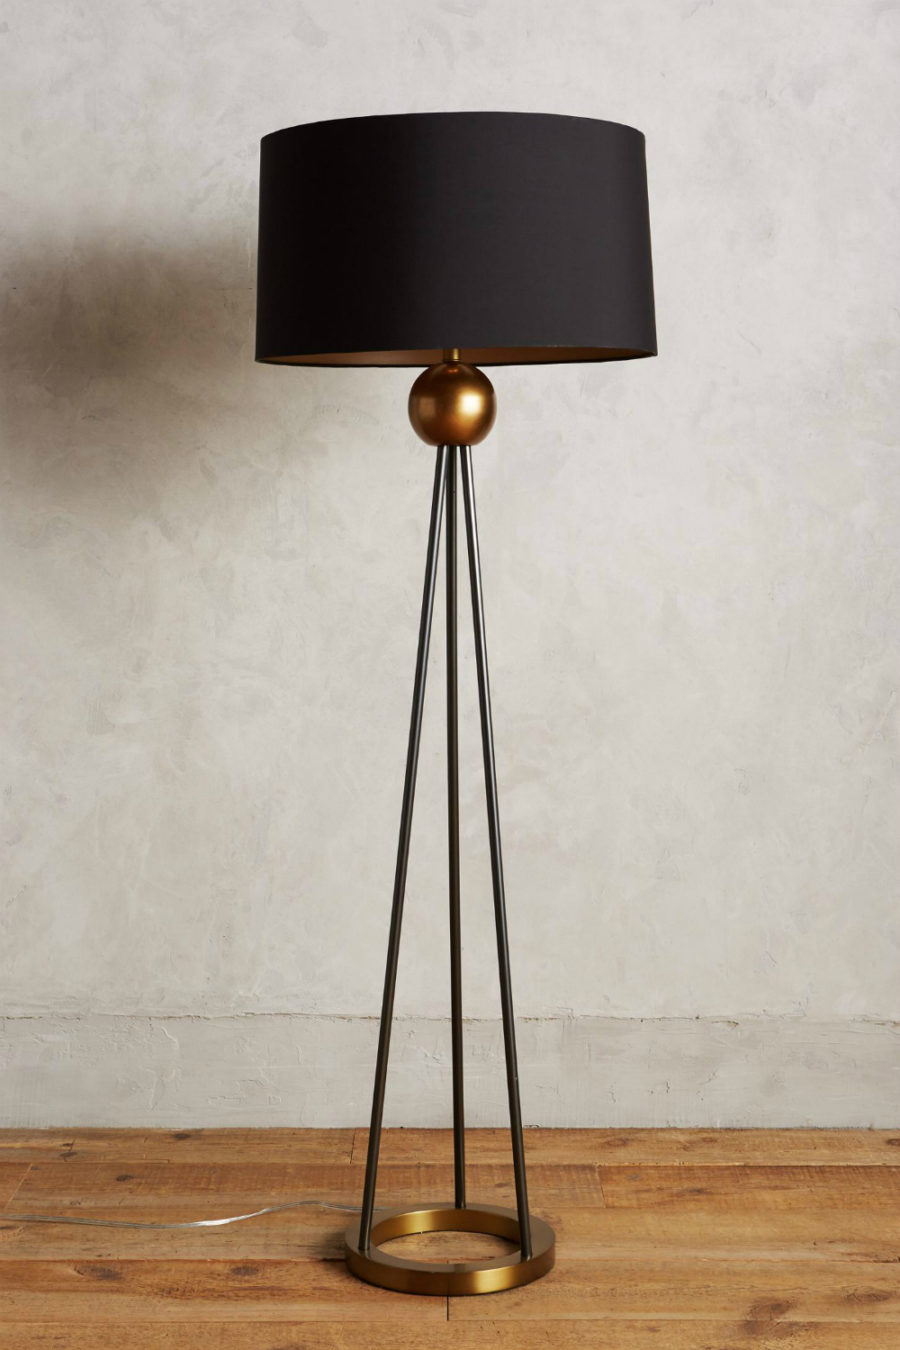 25 absolutely not boring tripod floor lamp designs view in gallery triangulate floor lamp ensemble 900x1350 25 absolutely not boring tripod floor lamp designs solutioingenieria